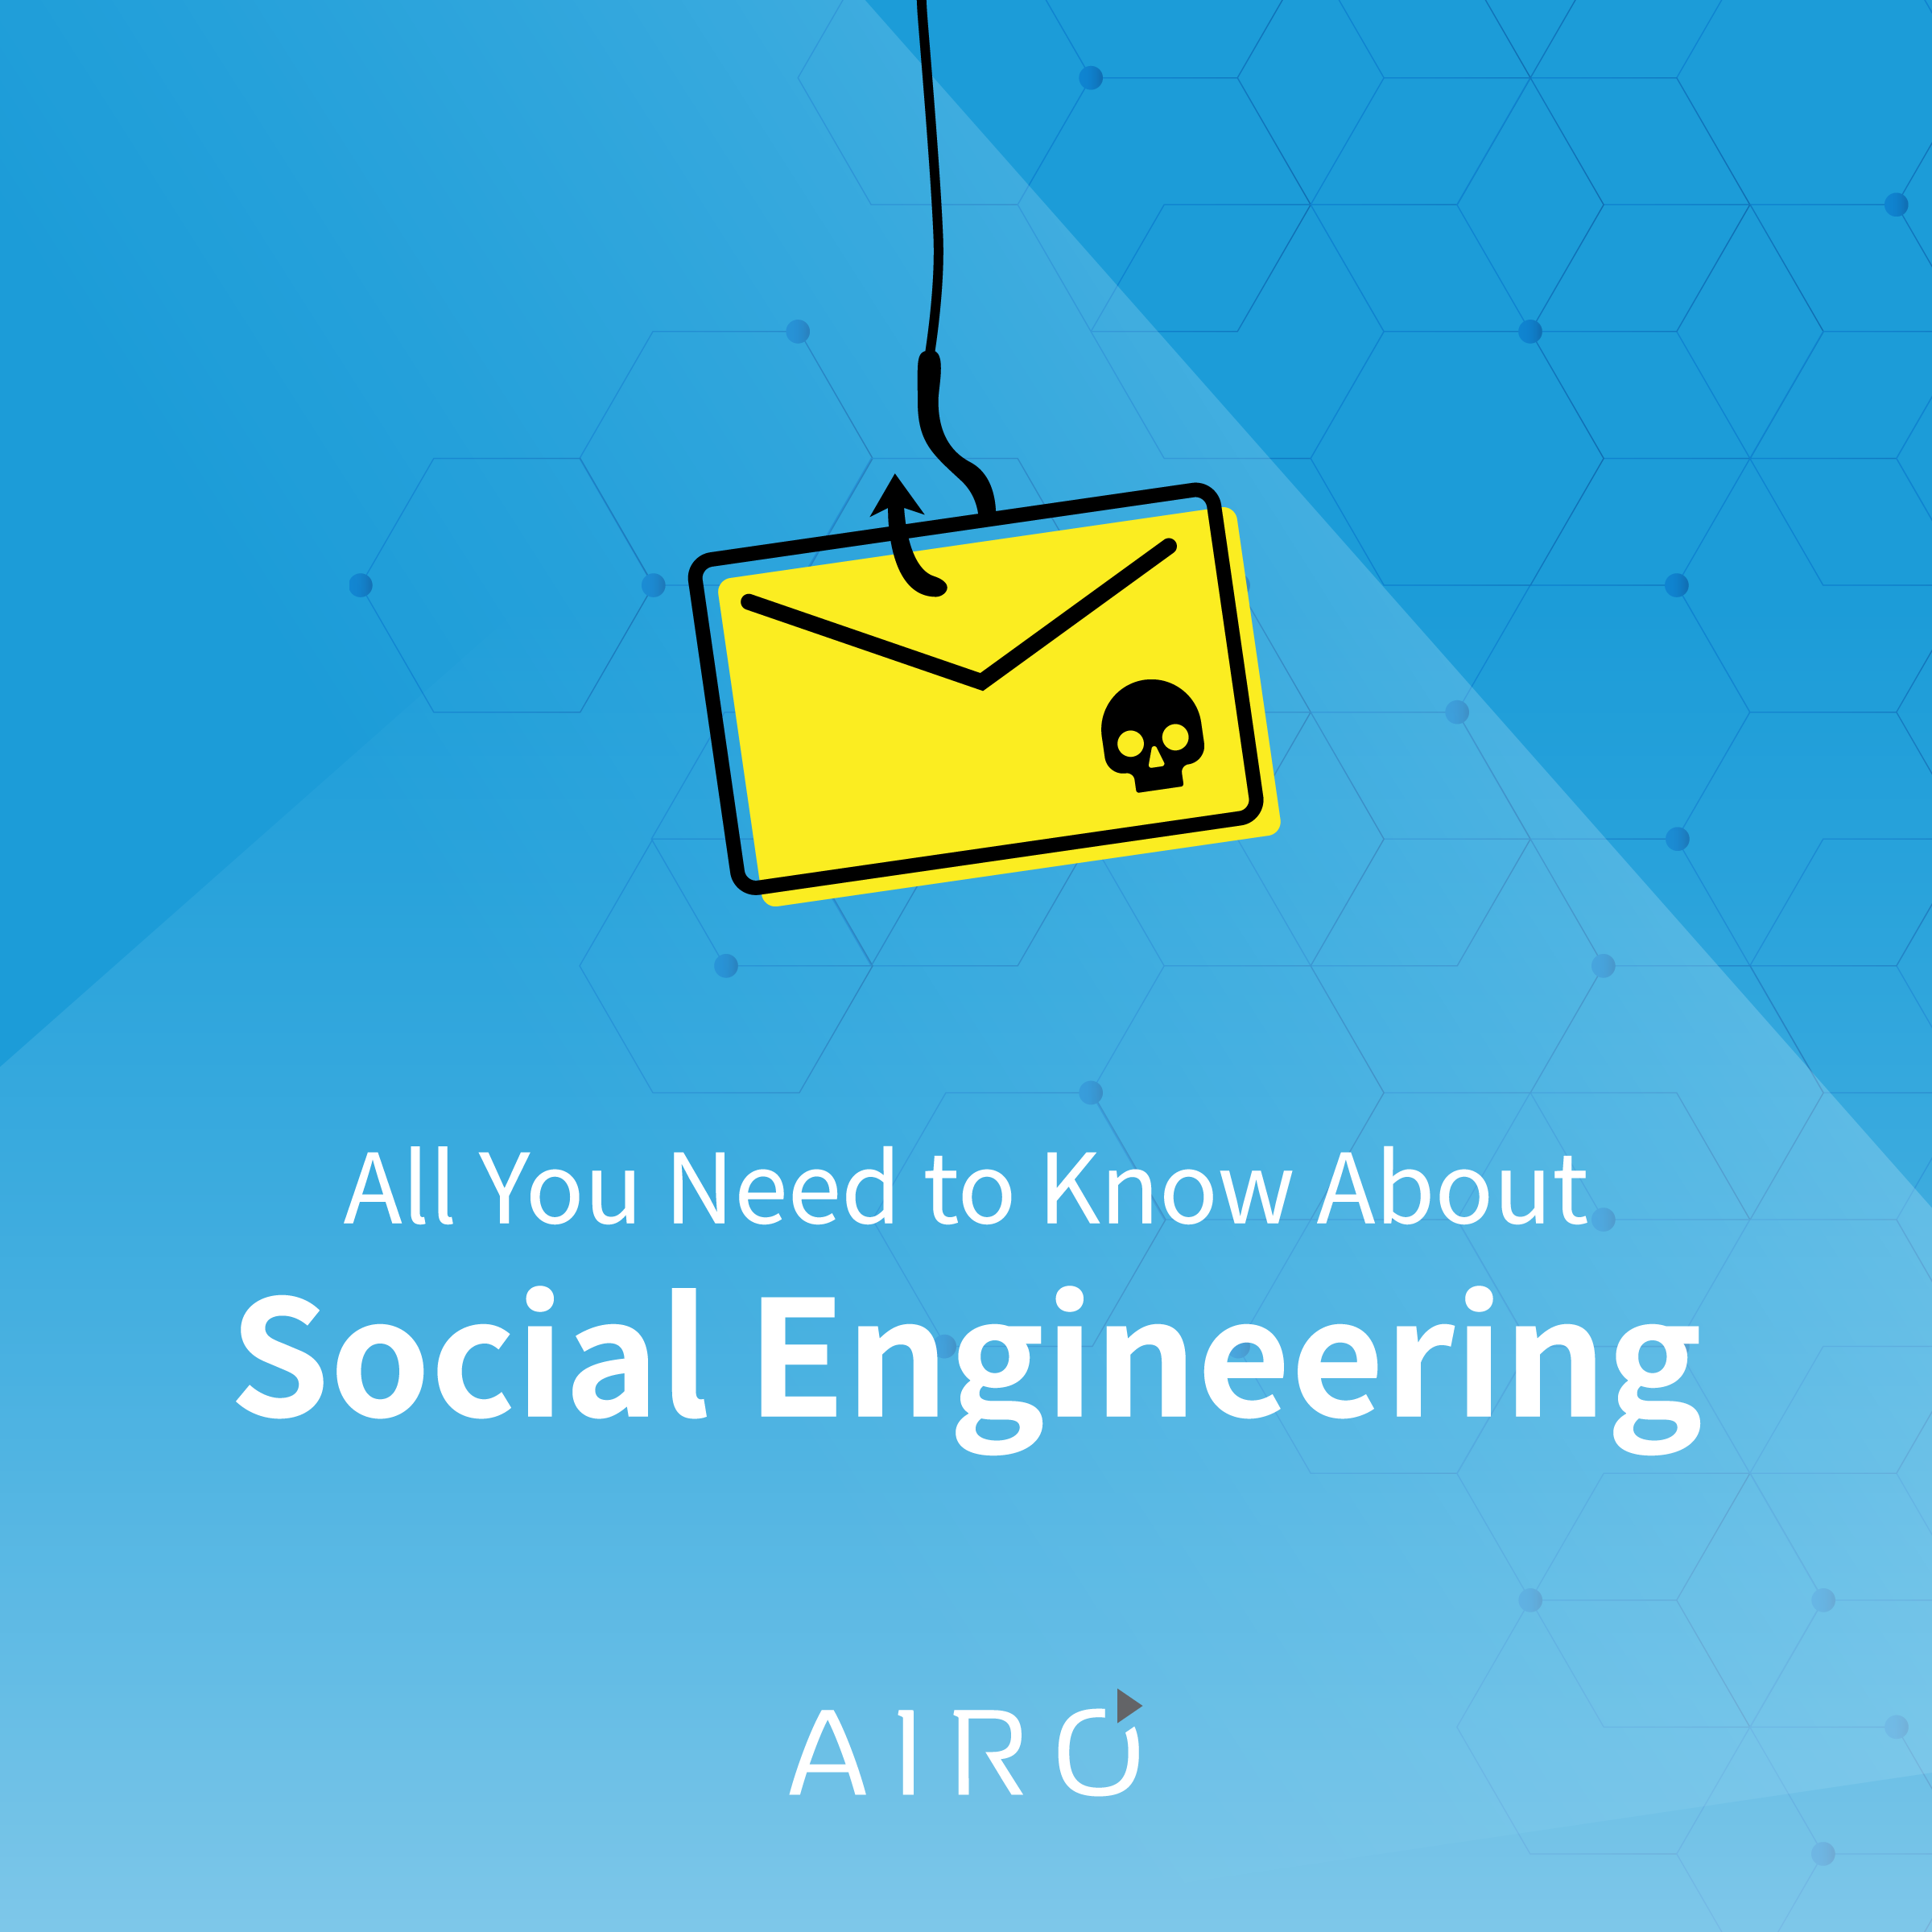 All You Need to Know about Social Engineering